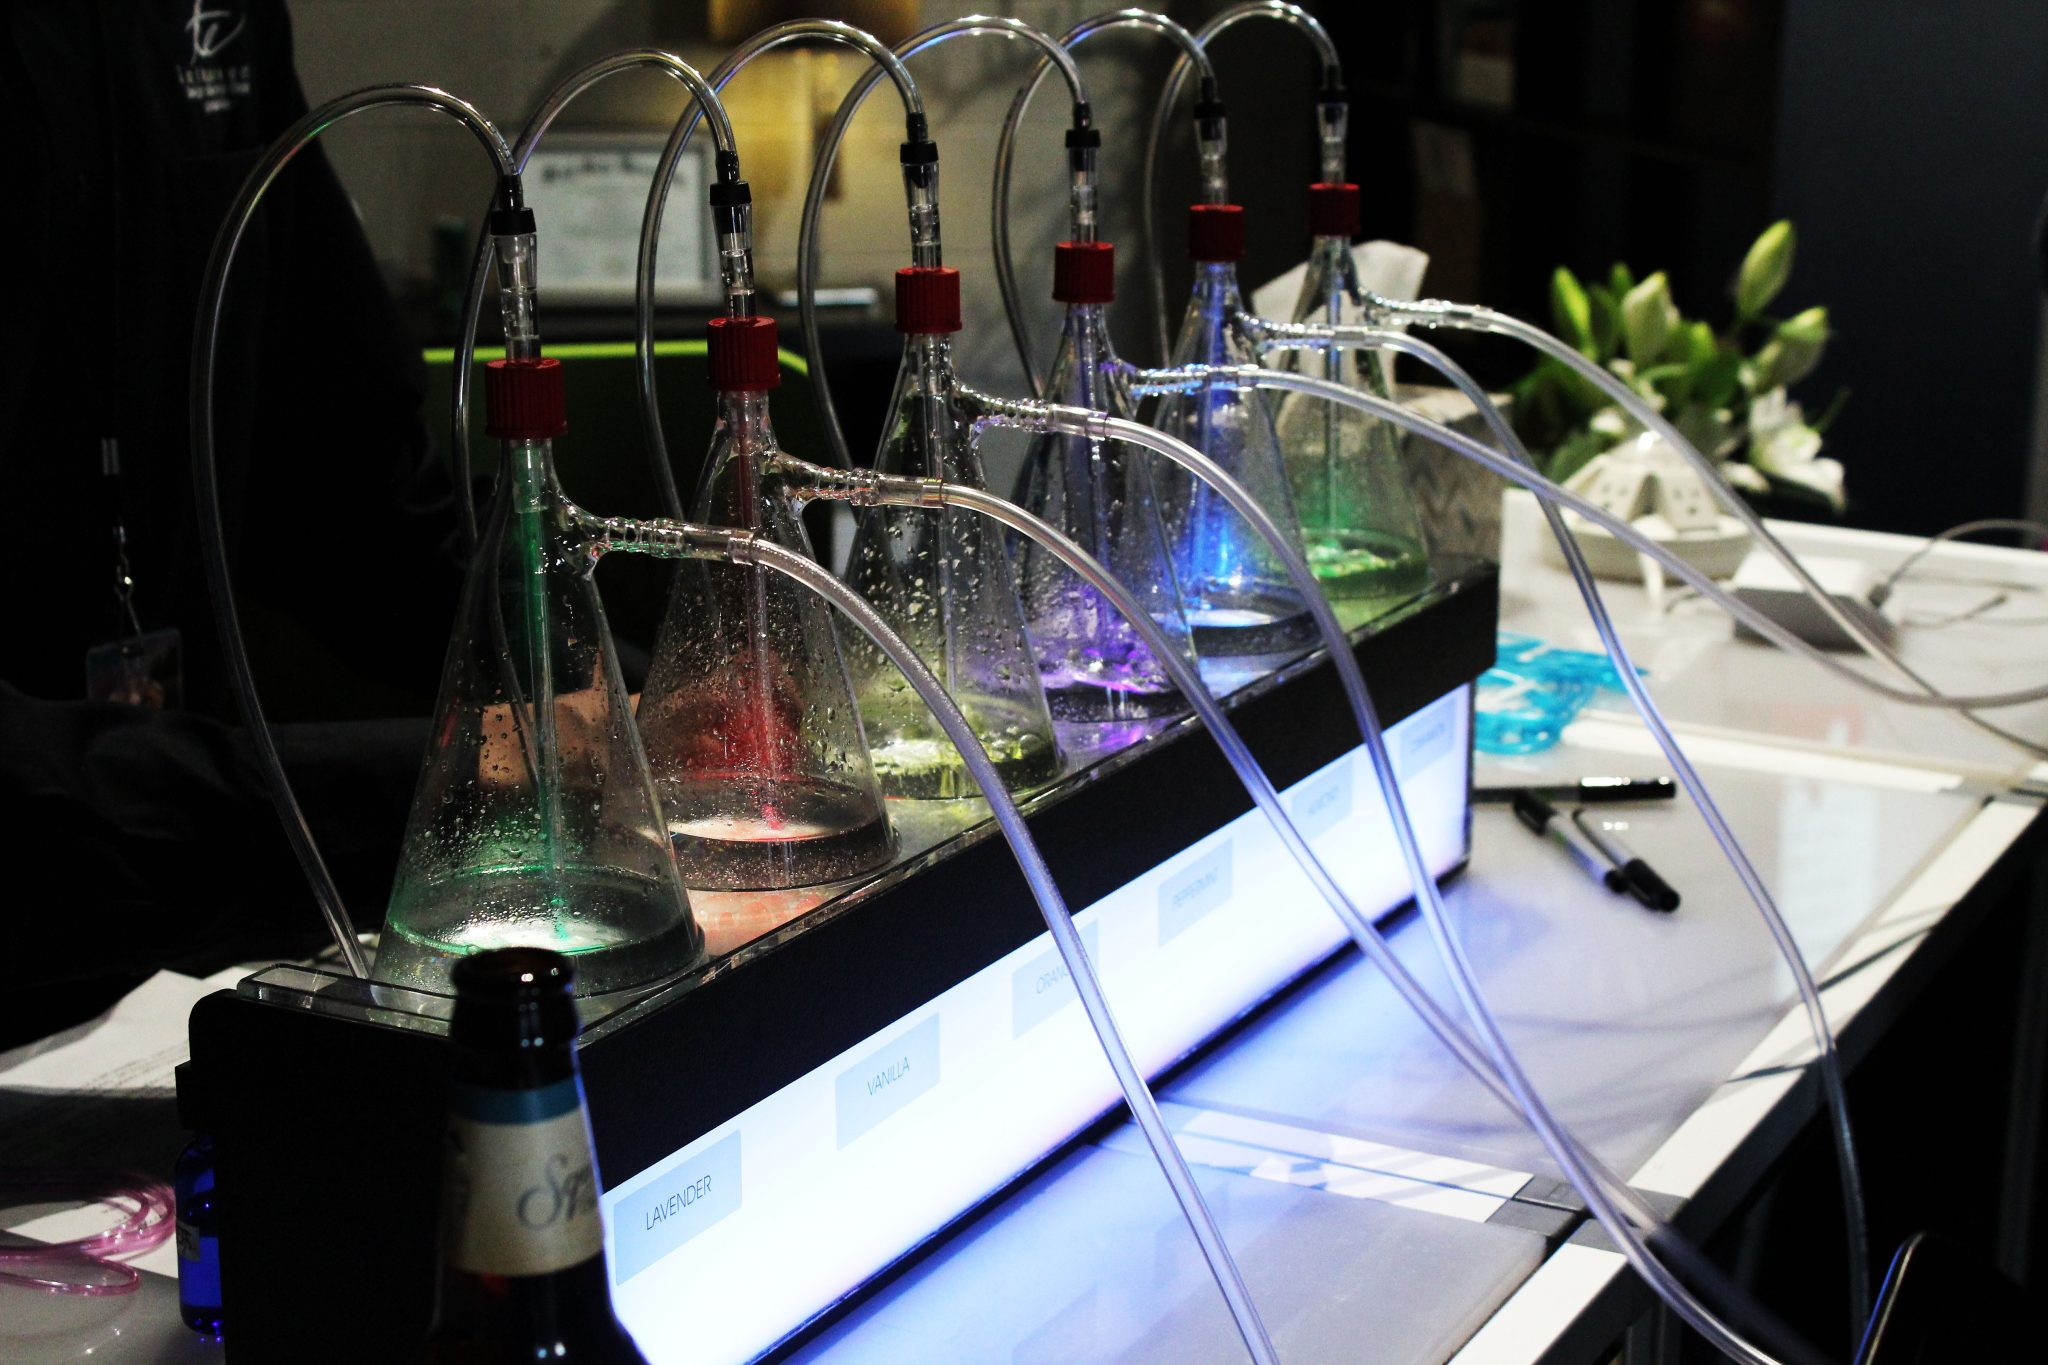 Event Rental | Oxygen Bar Equipment oxygen bar Our Favorite Event Rentals | The Oxygen Bar OH 19